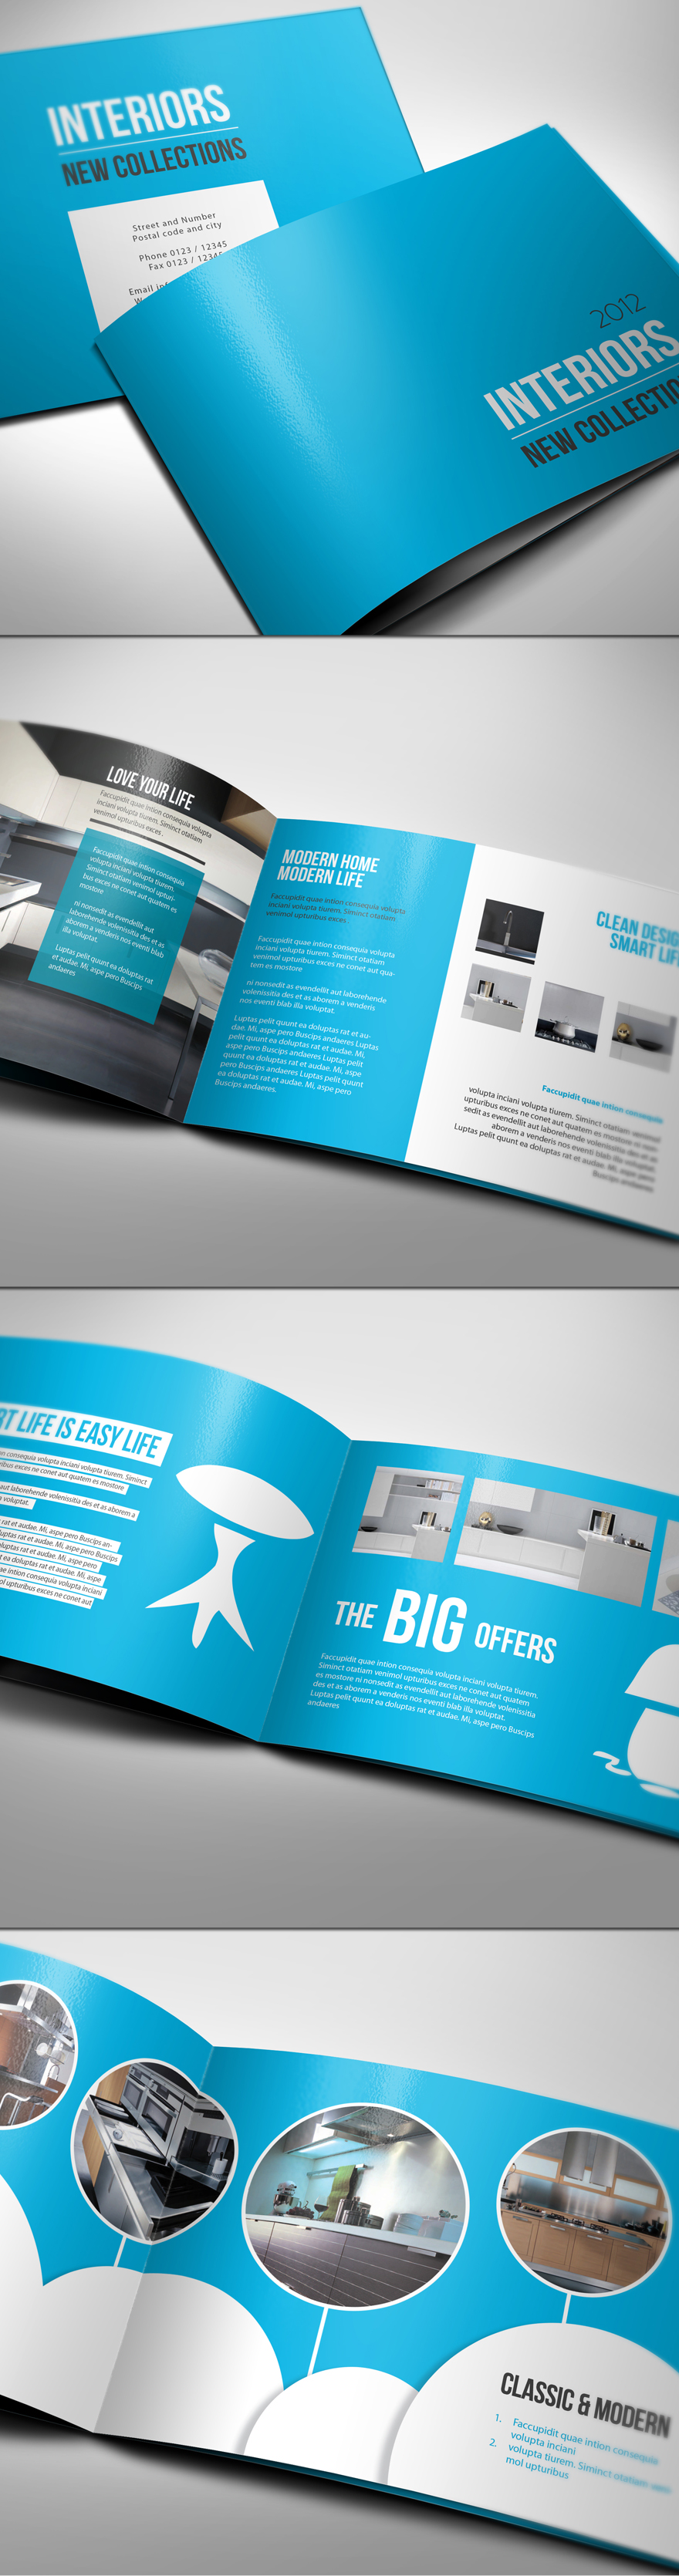 12 Folders e Flyers Super Inspirativos! | Des1gn ON - Blog de Design e Inspiração.